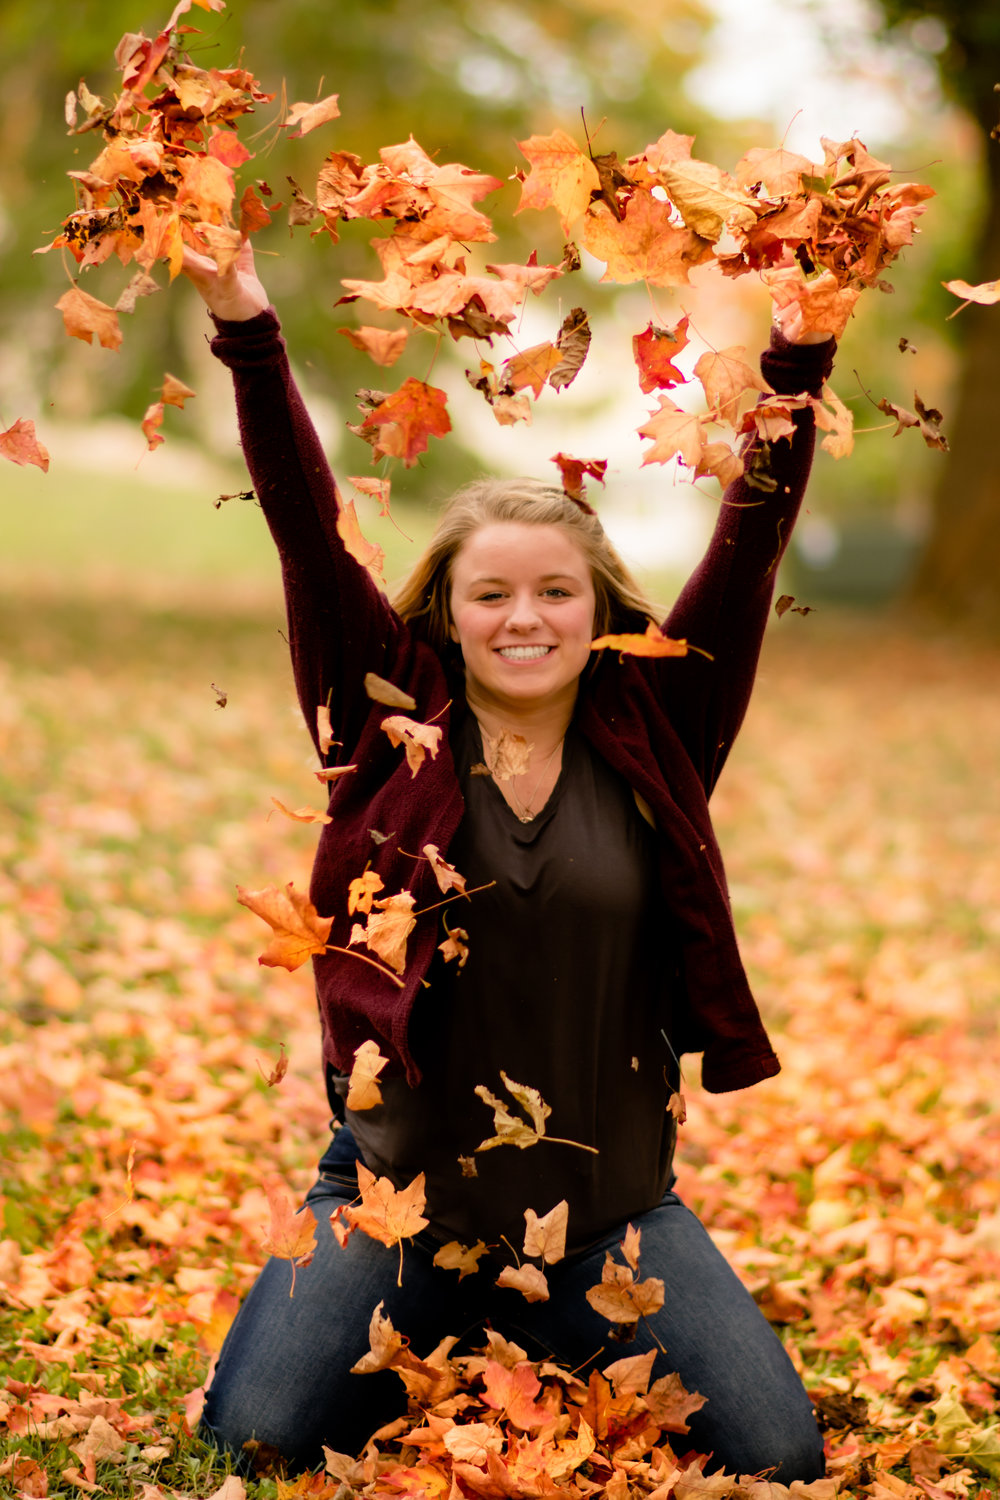 Leaves in the fall make for amazing props in photos and don't cost a thing.